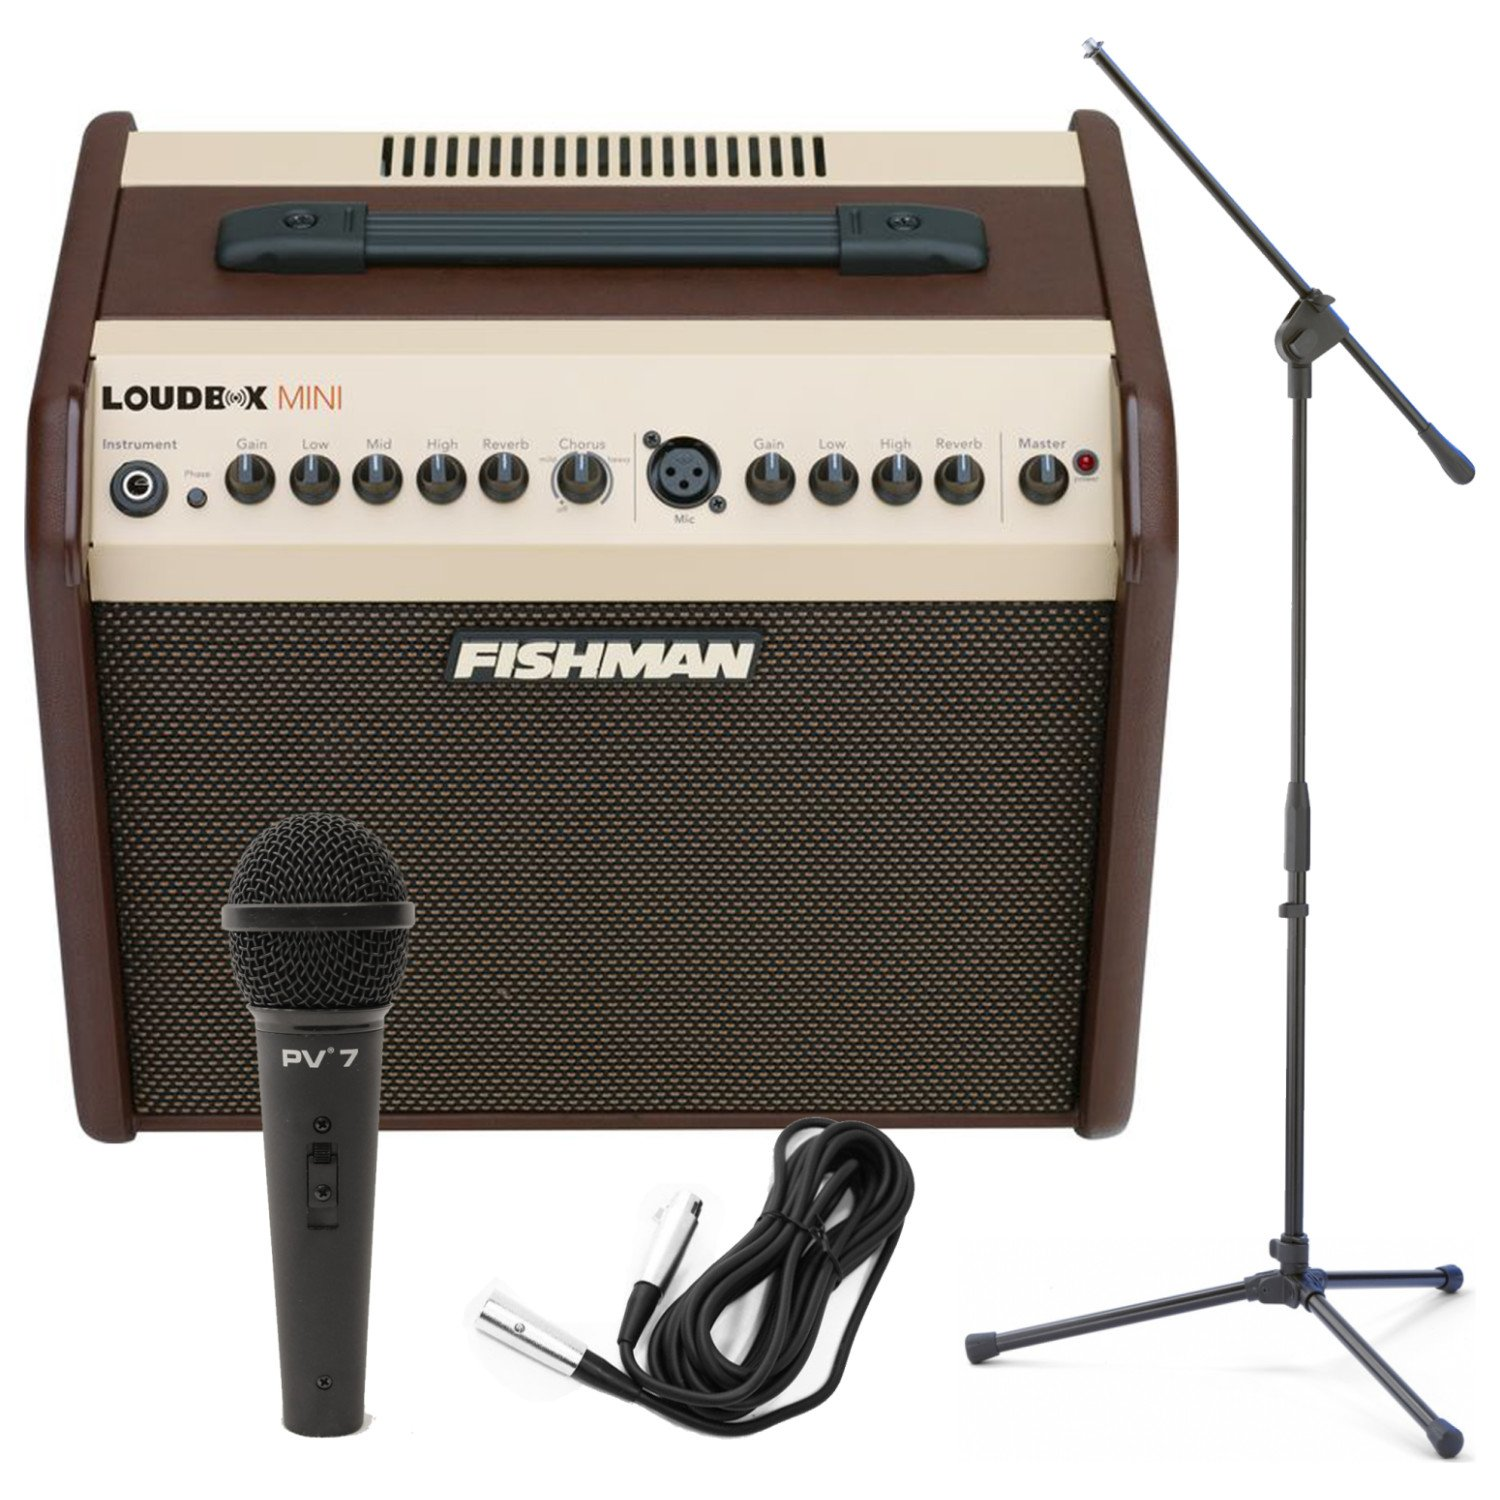 Fishman Loudbox Mini 60Watt Two Channel Acoustic Amp w/ Dynamic Microphone, Cable, and Boom Stand! by Fishman